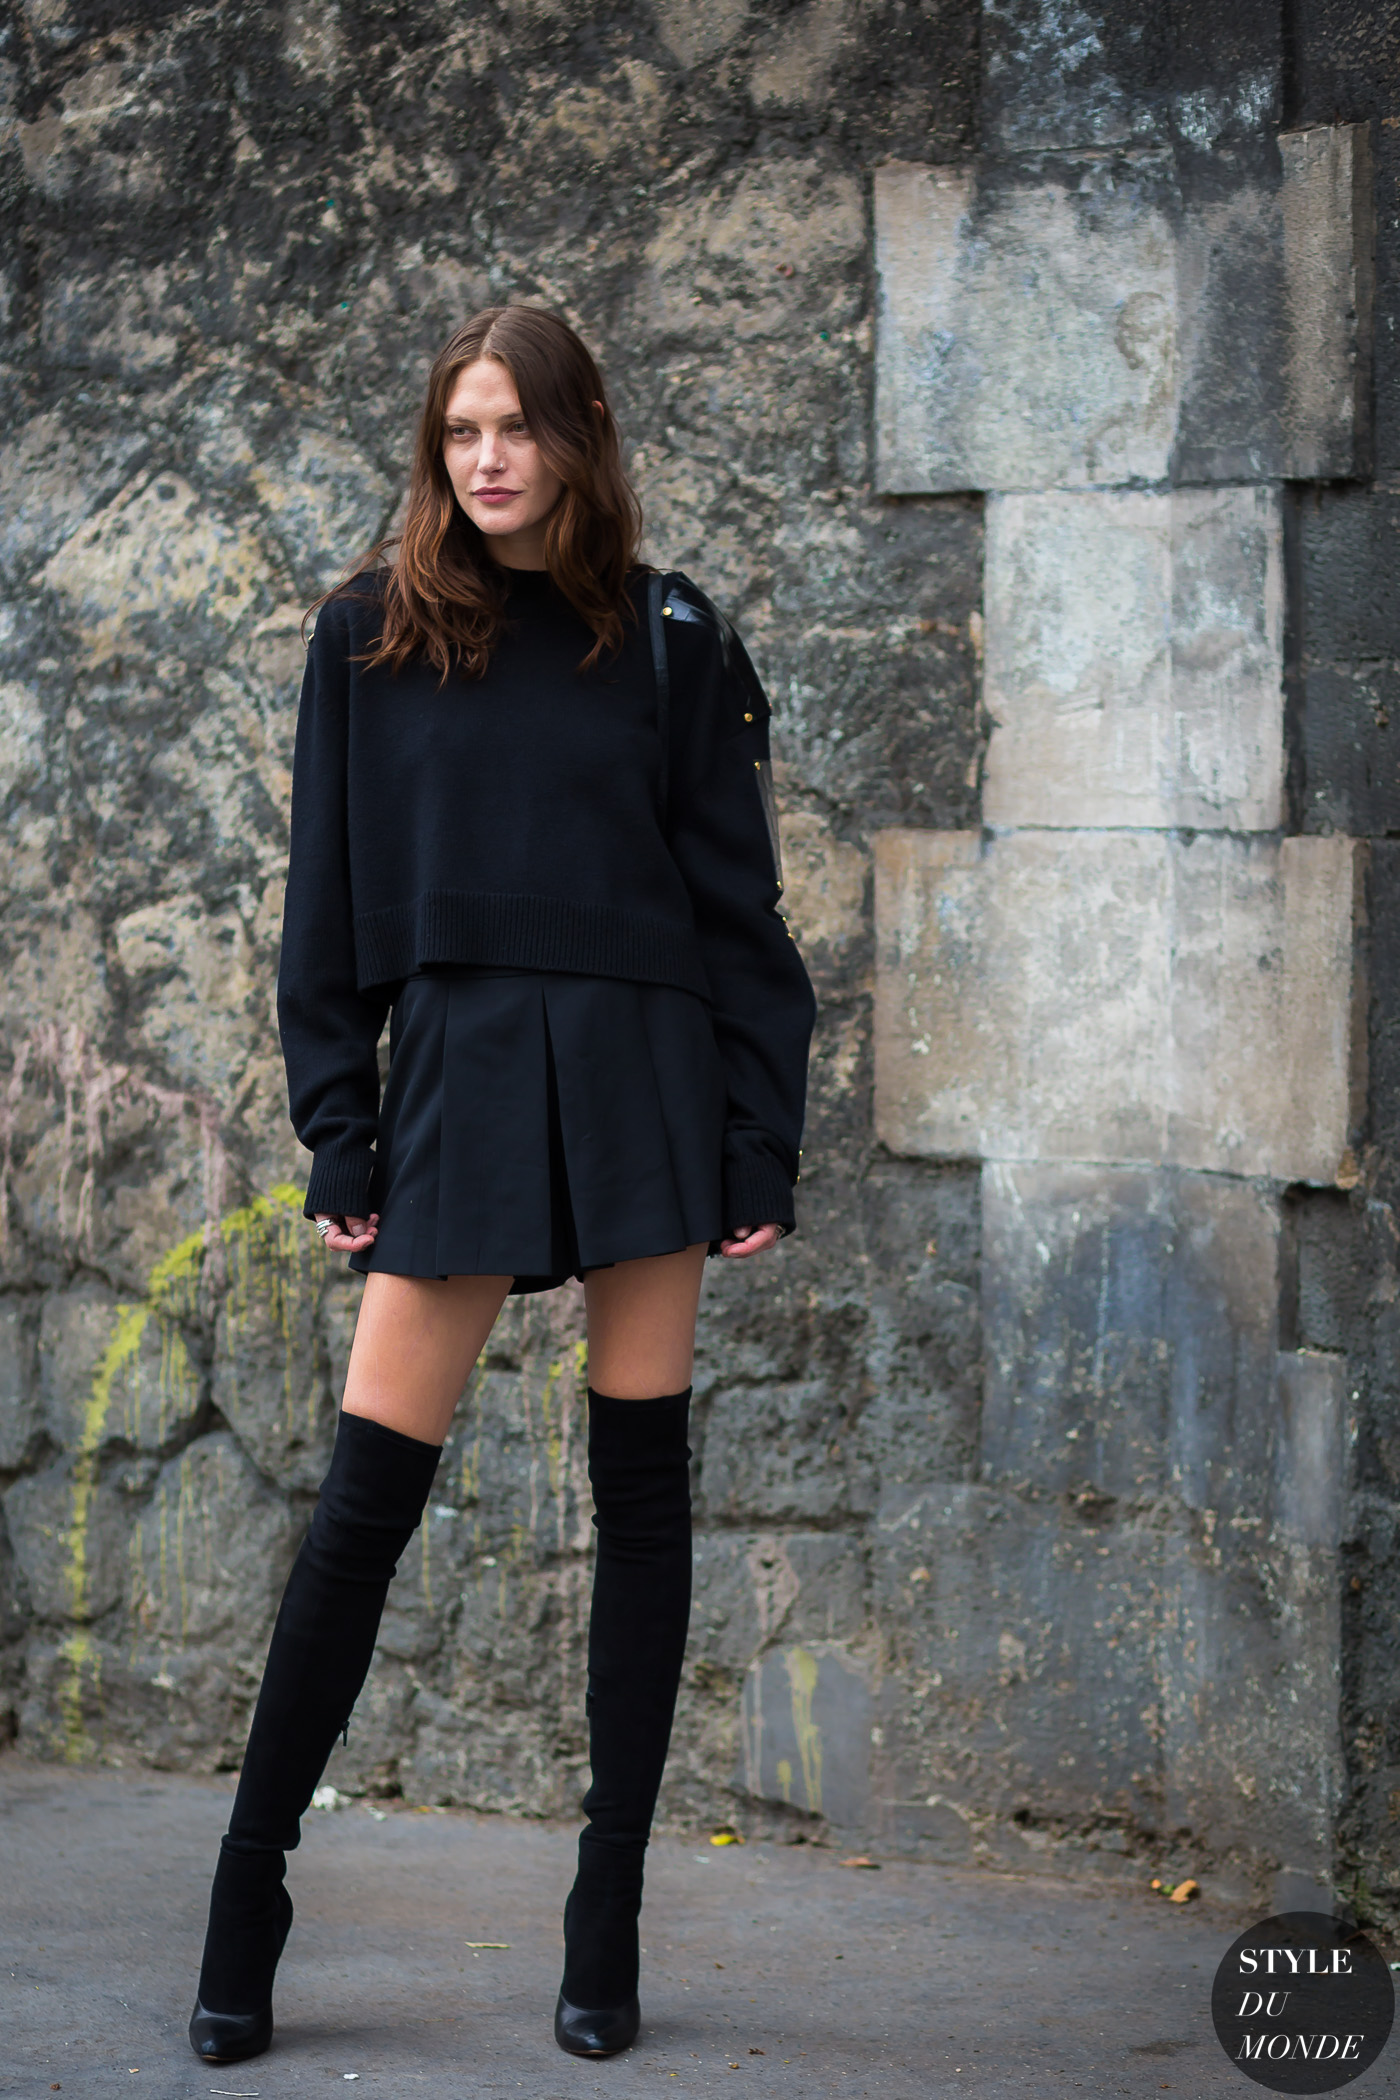 catherine-mcneil-by-styledumonde-street-style-fashion-photography